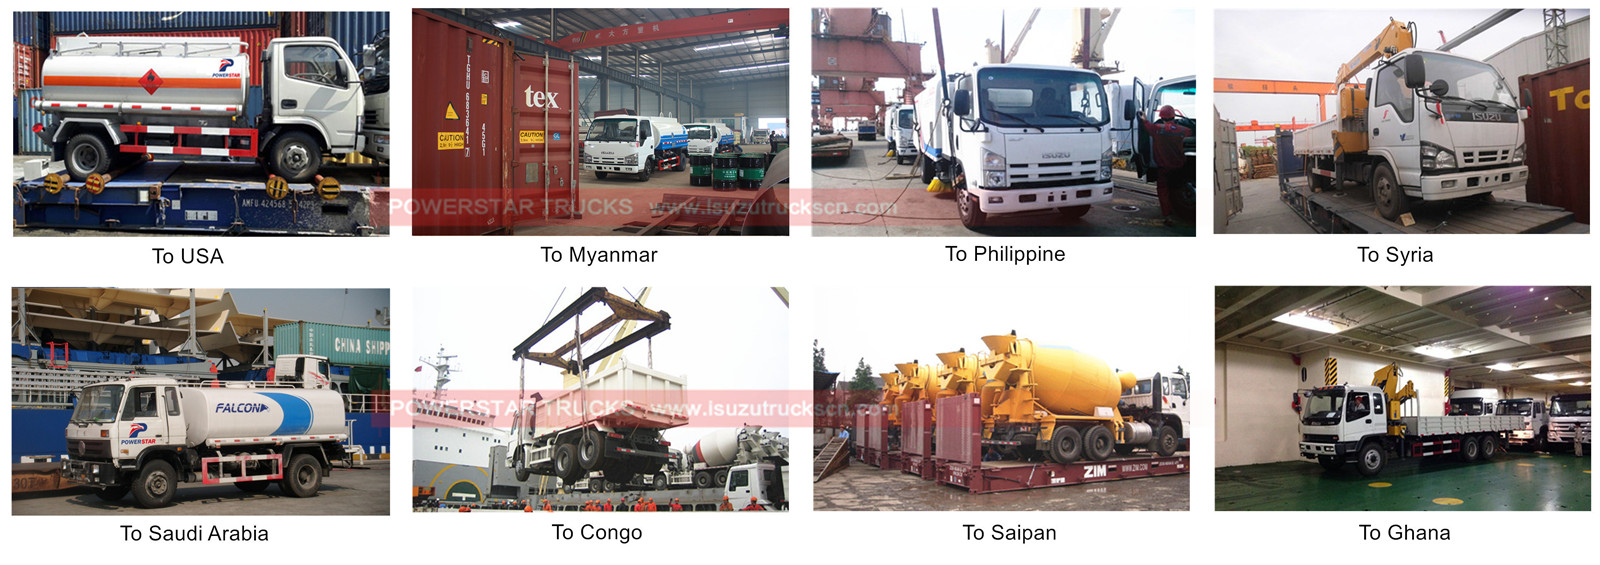 Isuzu water tanker trucks for shipping to Myanmar